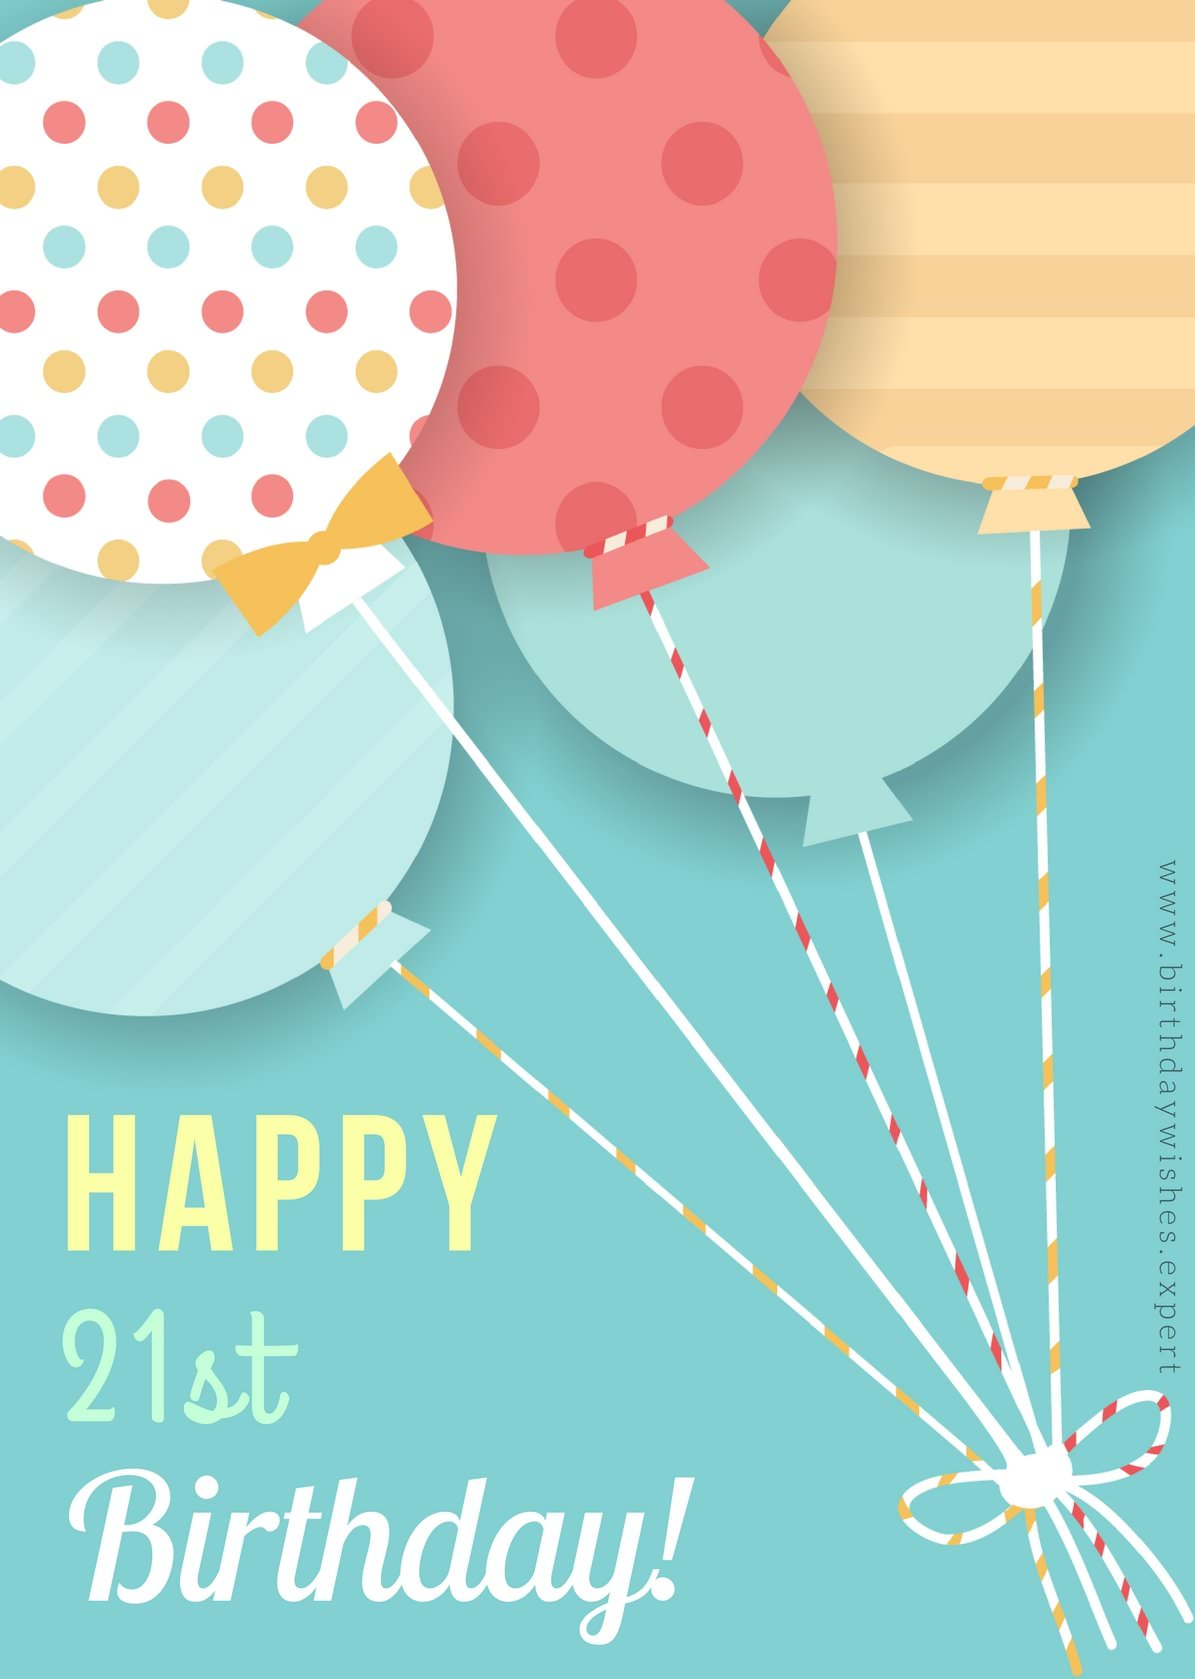 birthday message for boyfriend turning 21 ; Happy-21st-Birthday-wish-on-image-with-colorful-balloons